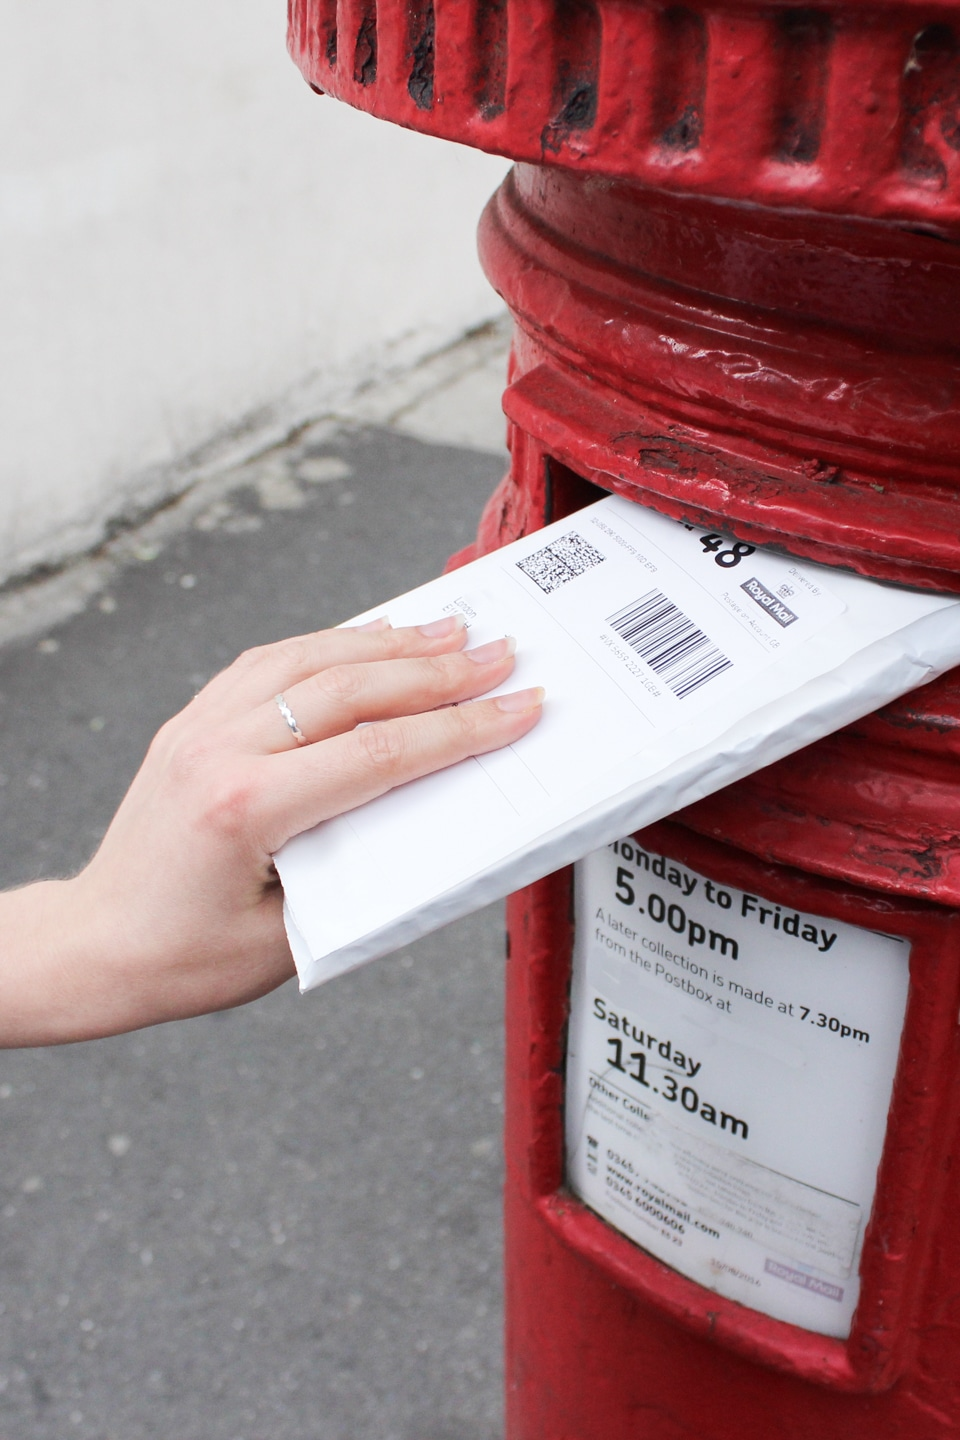 Envelope containing phones going into red postbox